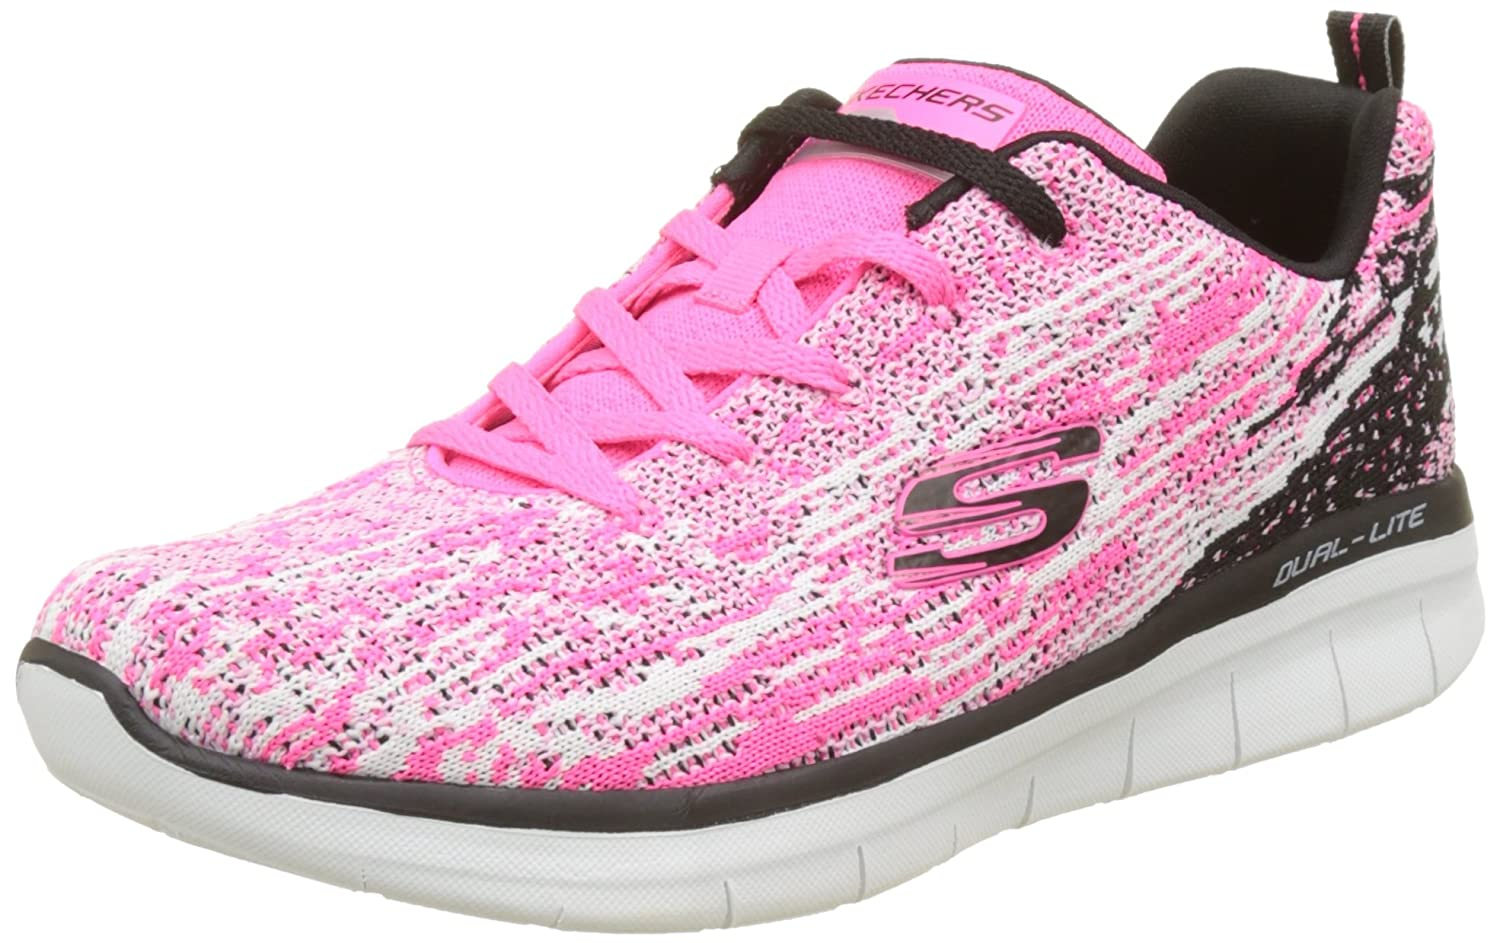 Skechers Sport Synergy 2.0 High Spirits Women's Sneaker B01MSAIXYR 8 B(M) US|Pink-black